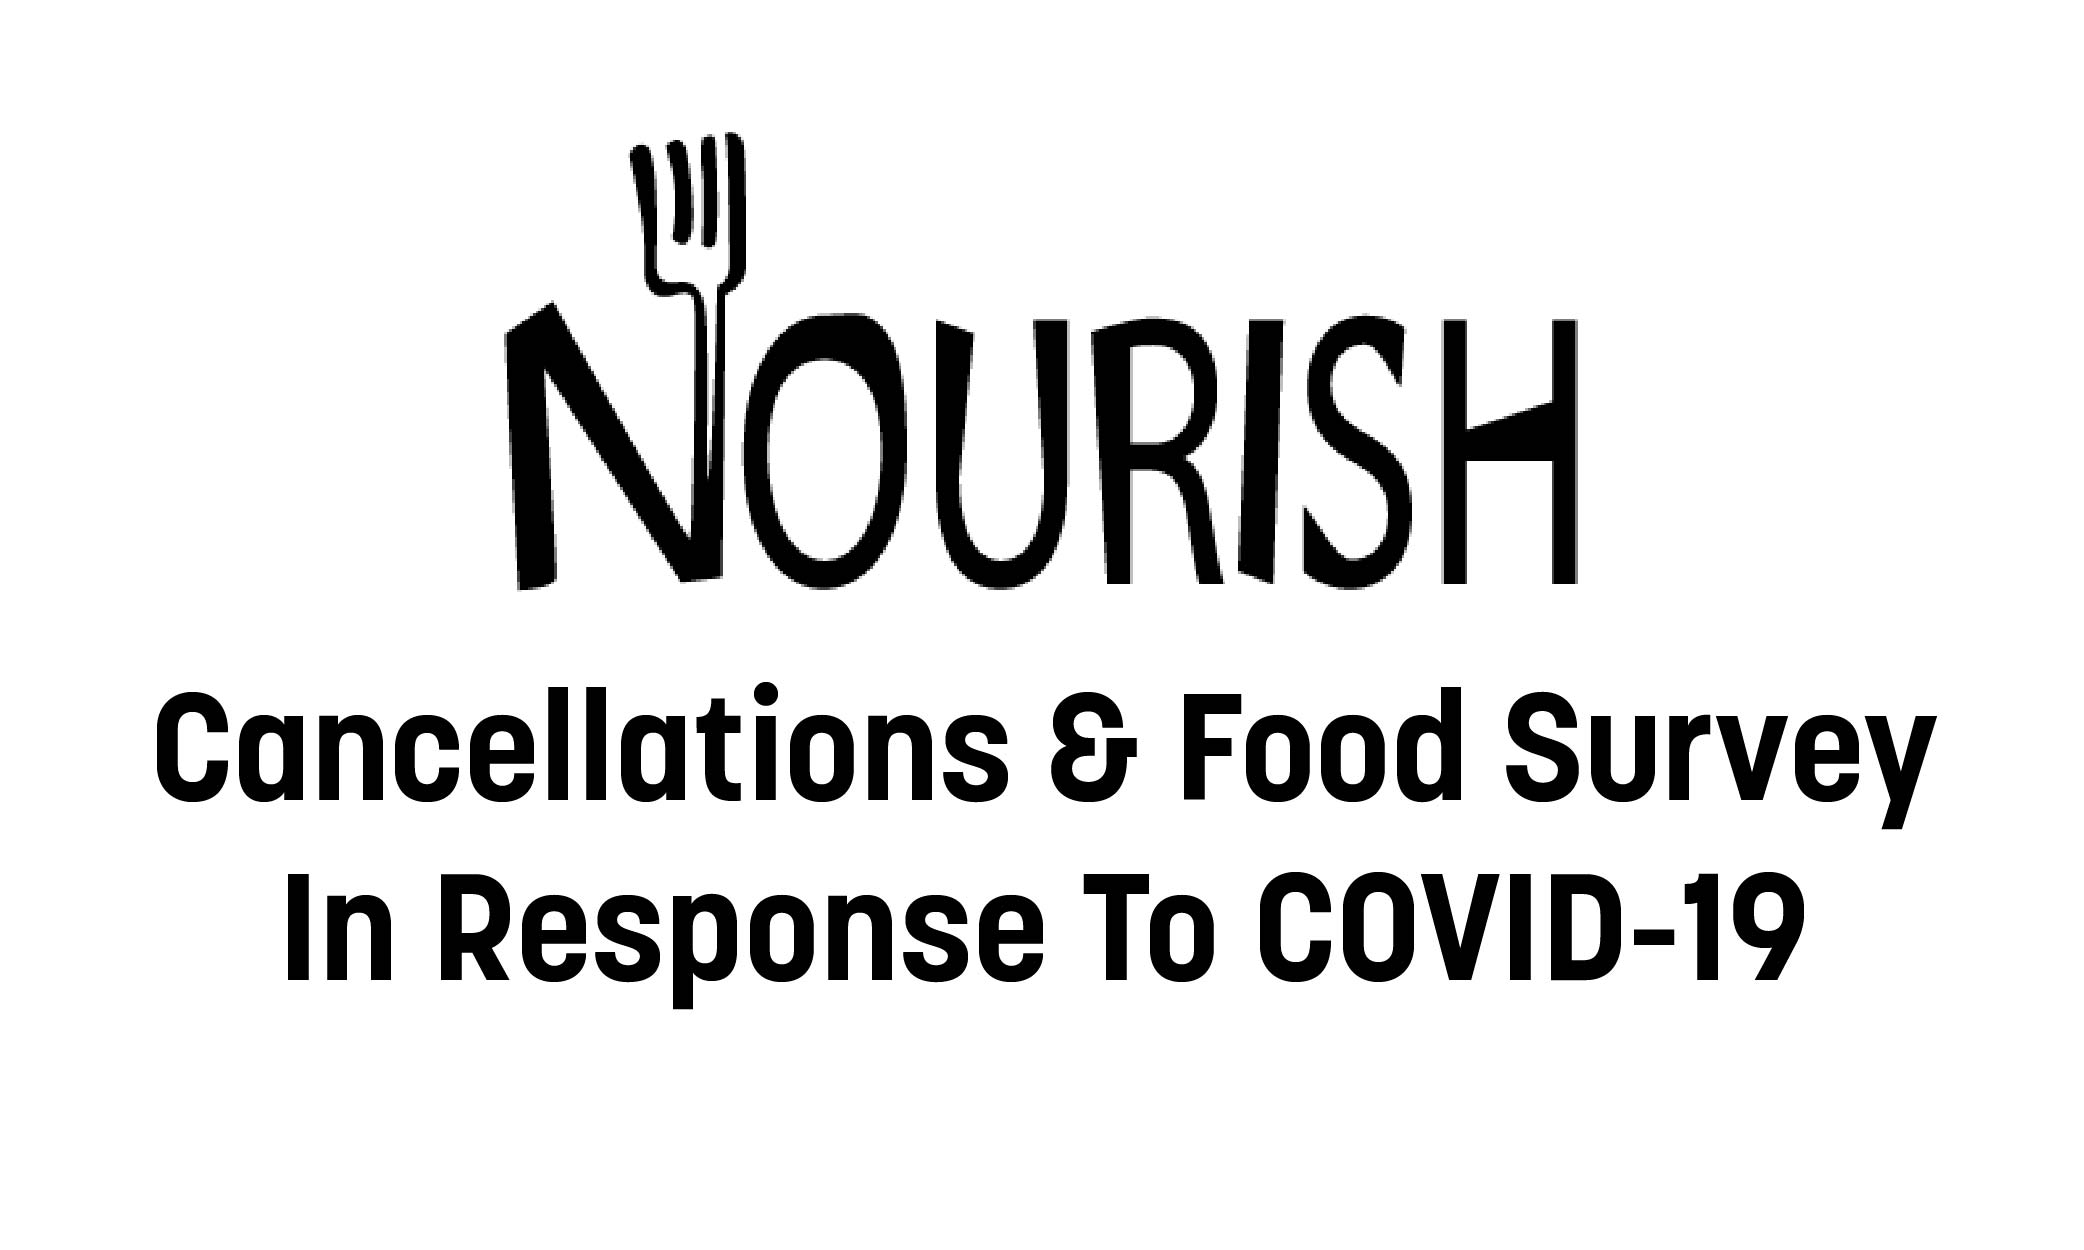 Nourish Cancellations and Food Survey in Response to COVID-19